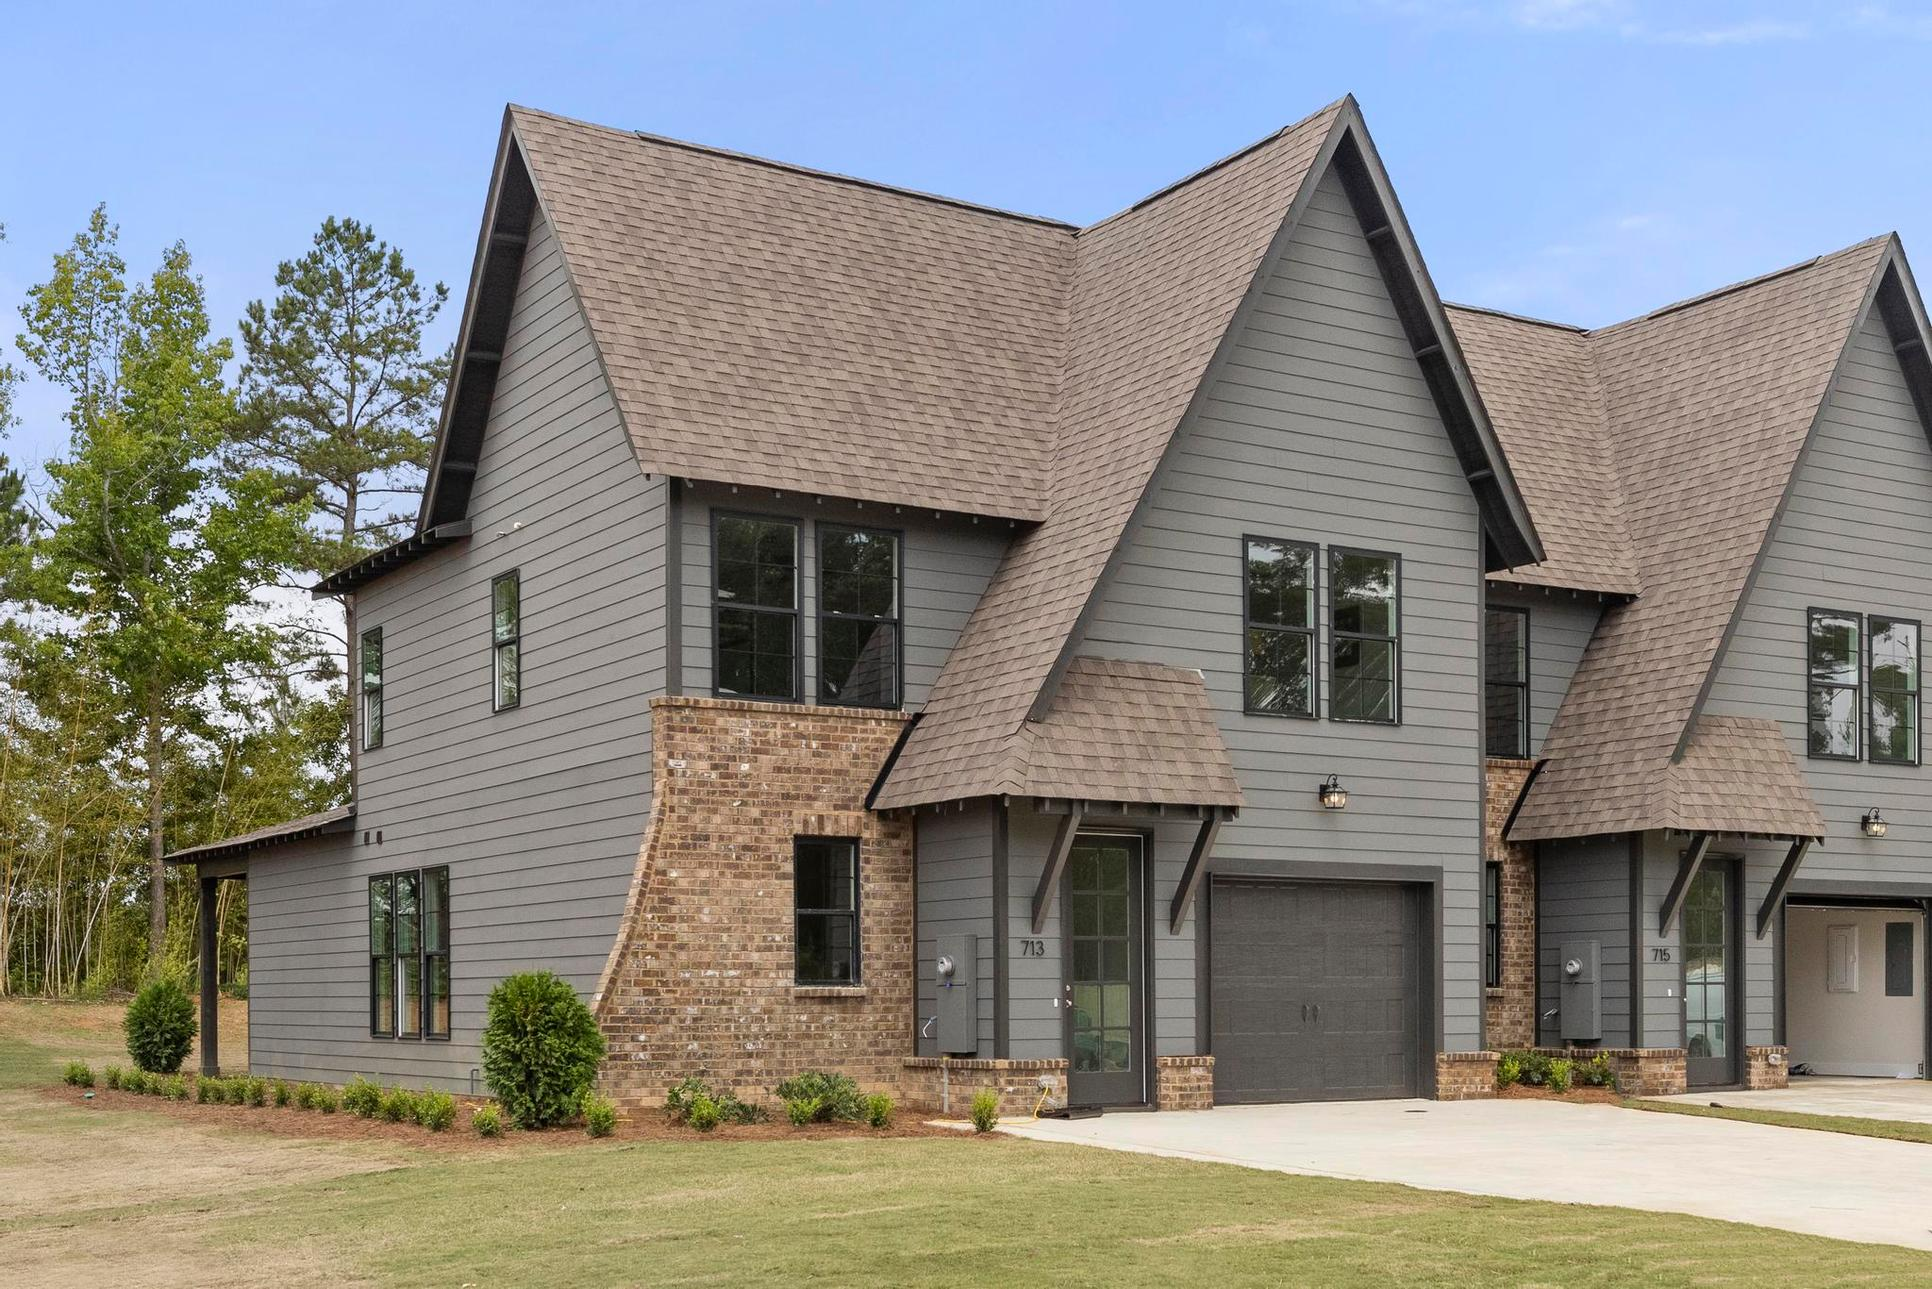 The Townhomes at Cyprus Cove:The Townhomes at Cyprus Cove